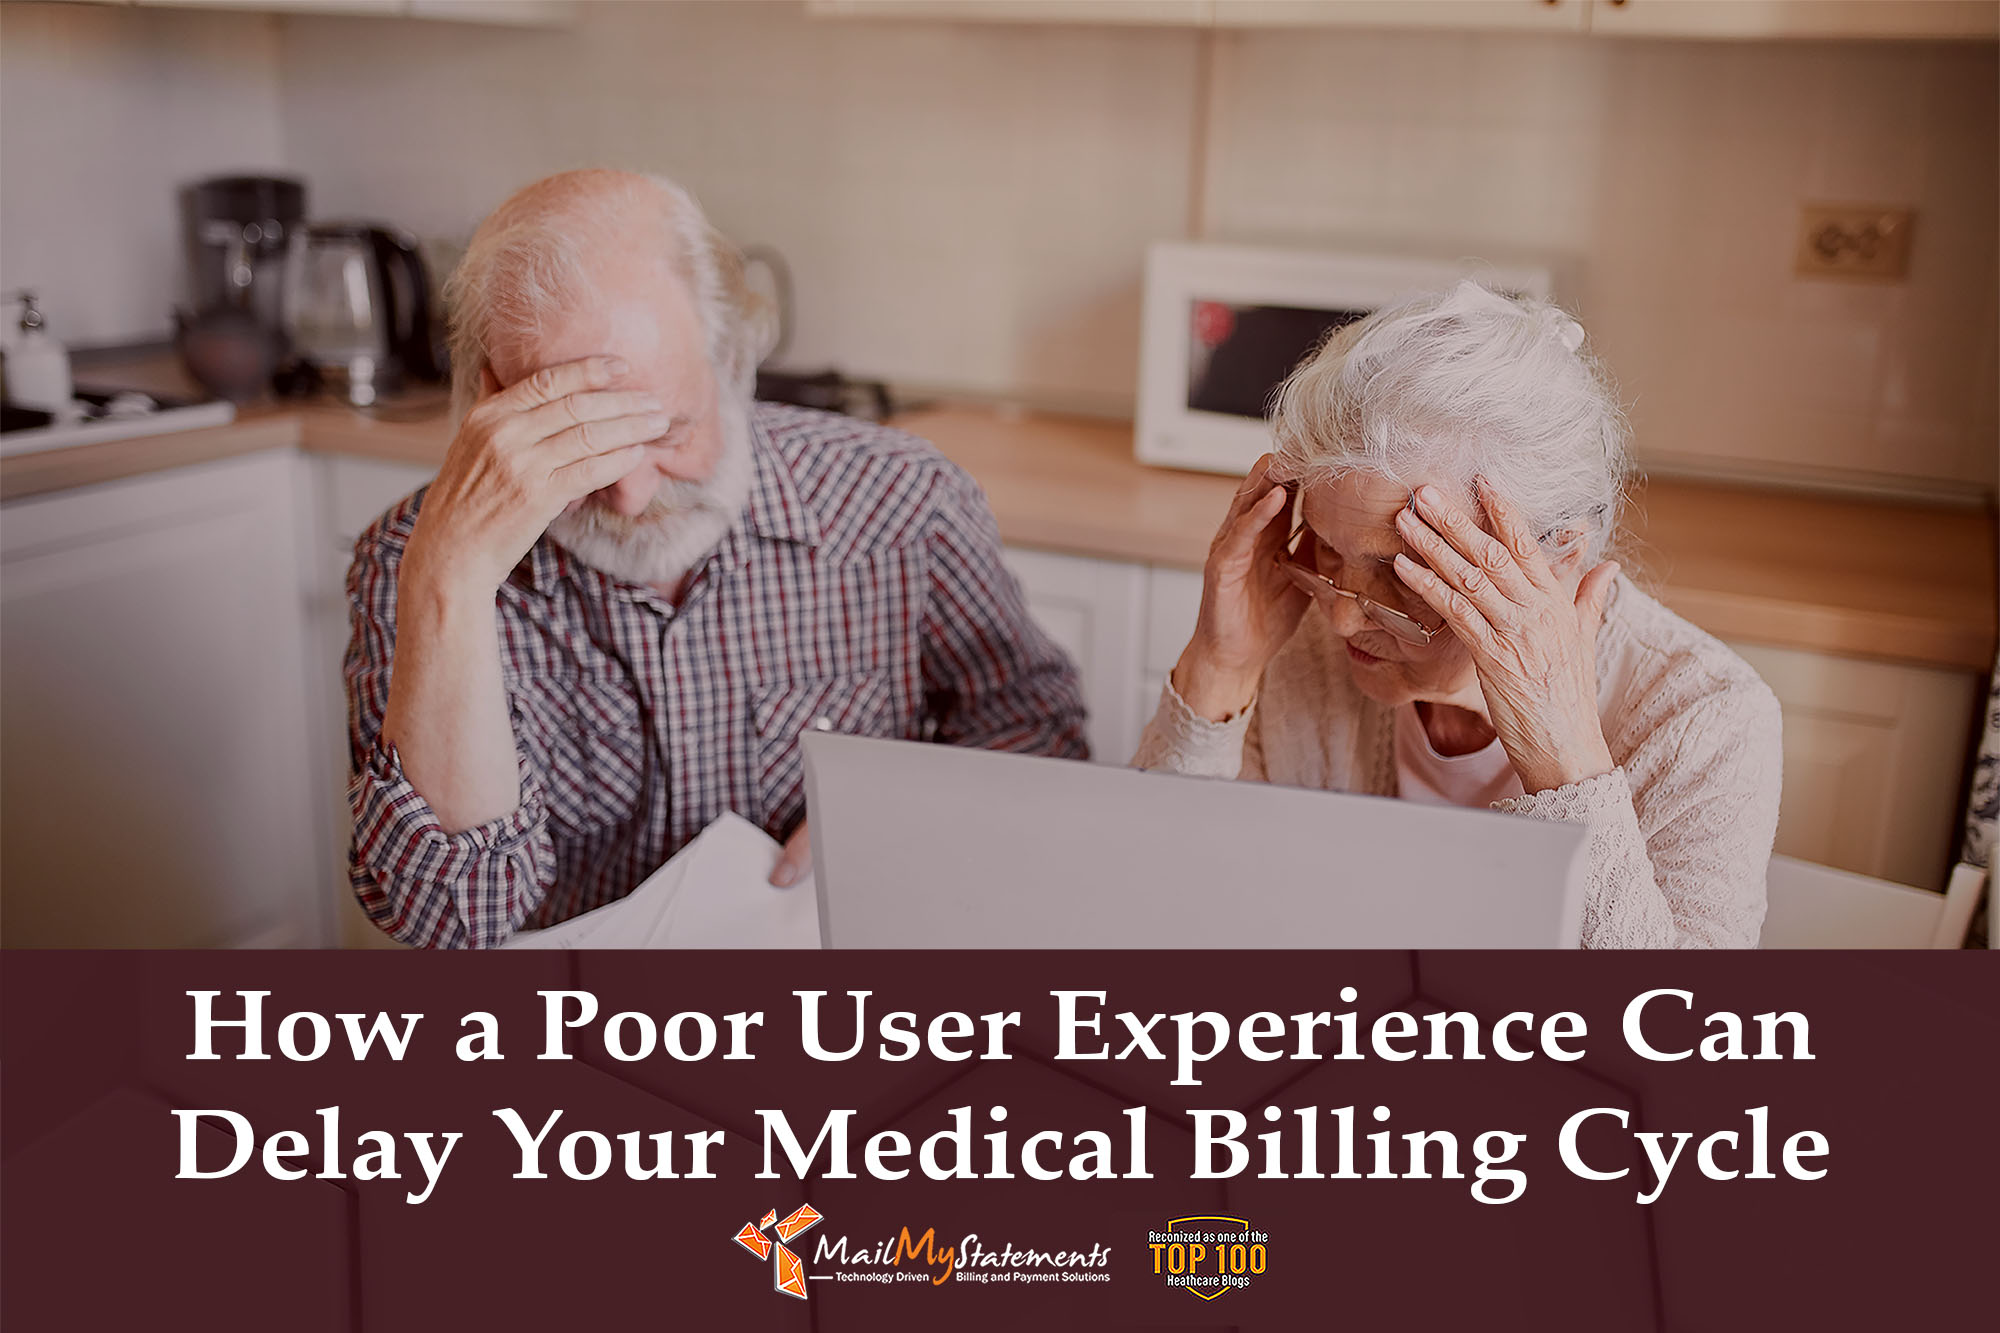 How a Poor User Experience Can Delay Your Medical Billing Cycle